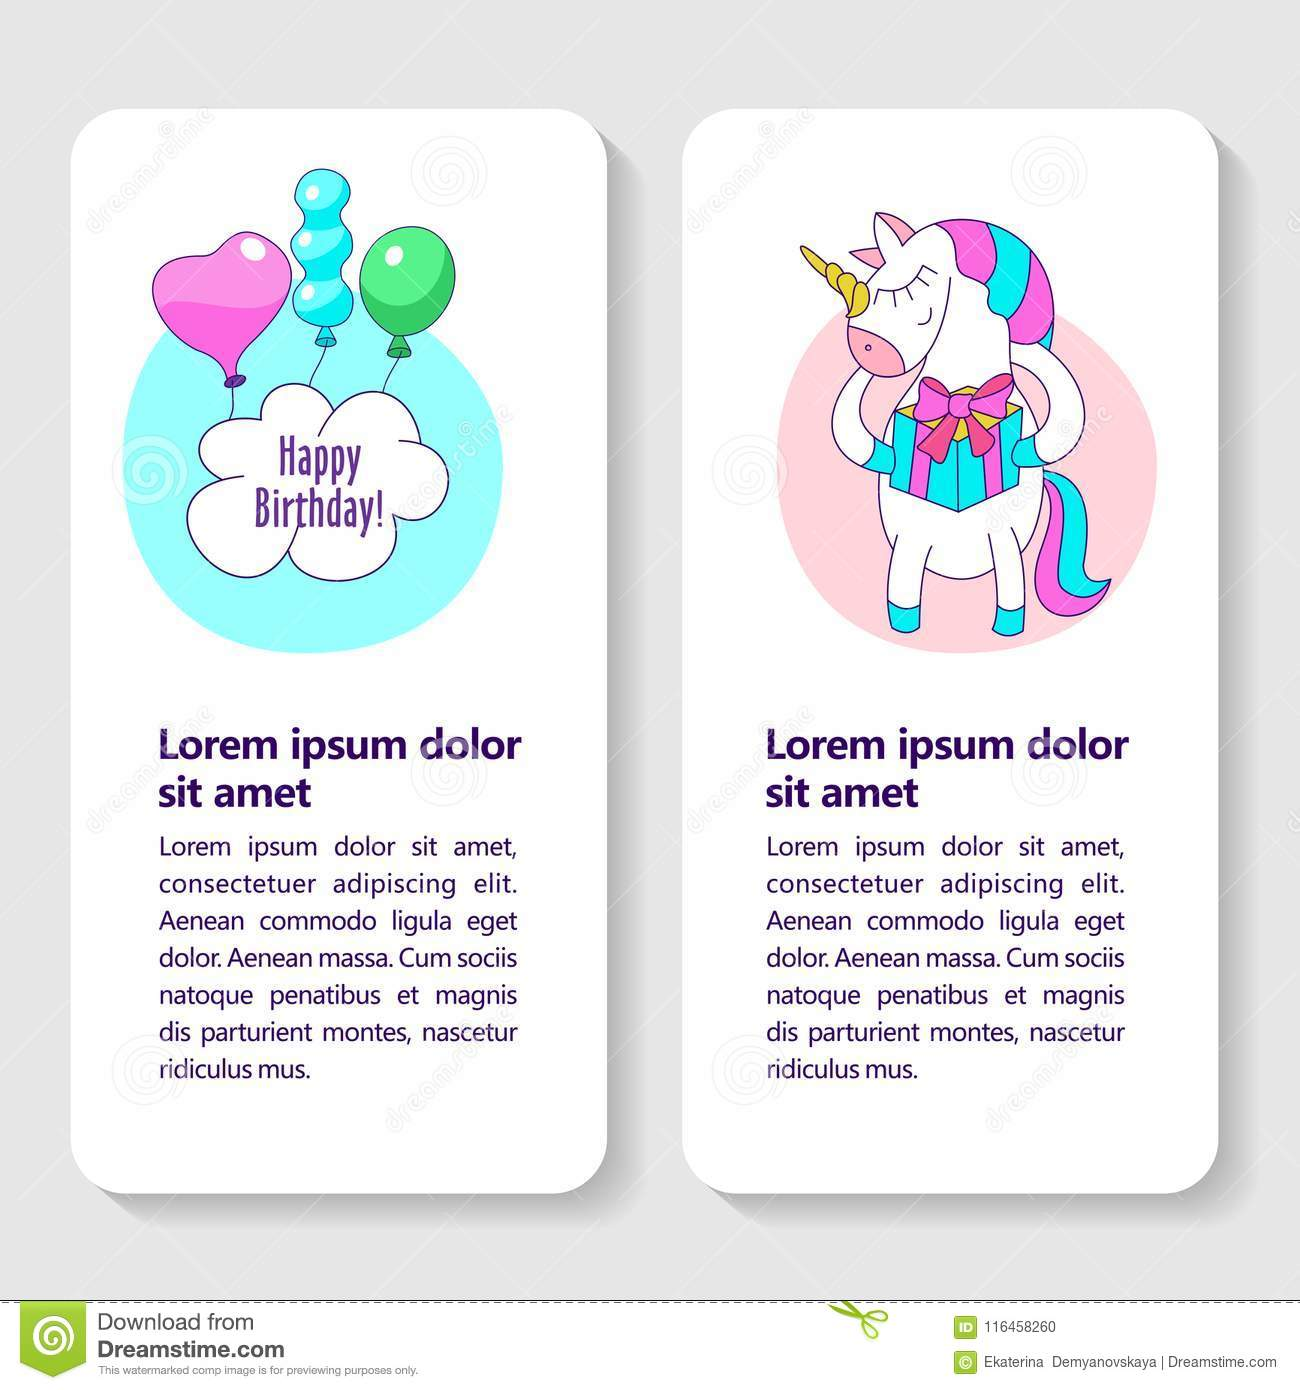 Happy Birthday Greeting Cards With Cute Magic Unicorn That Holds A